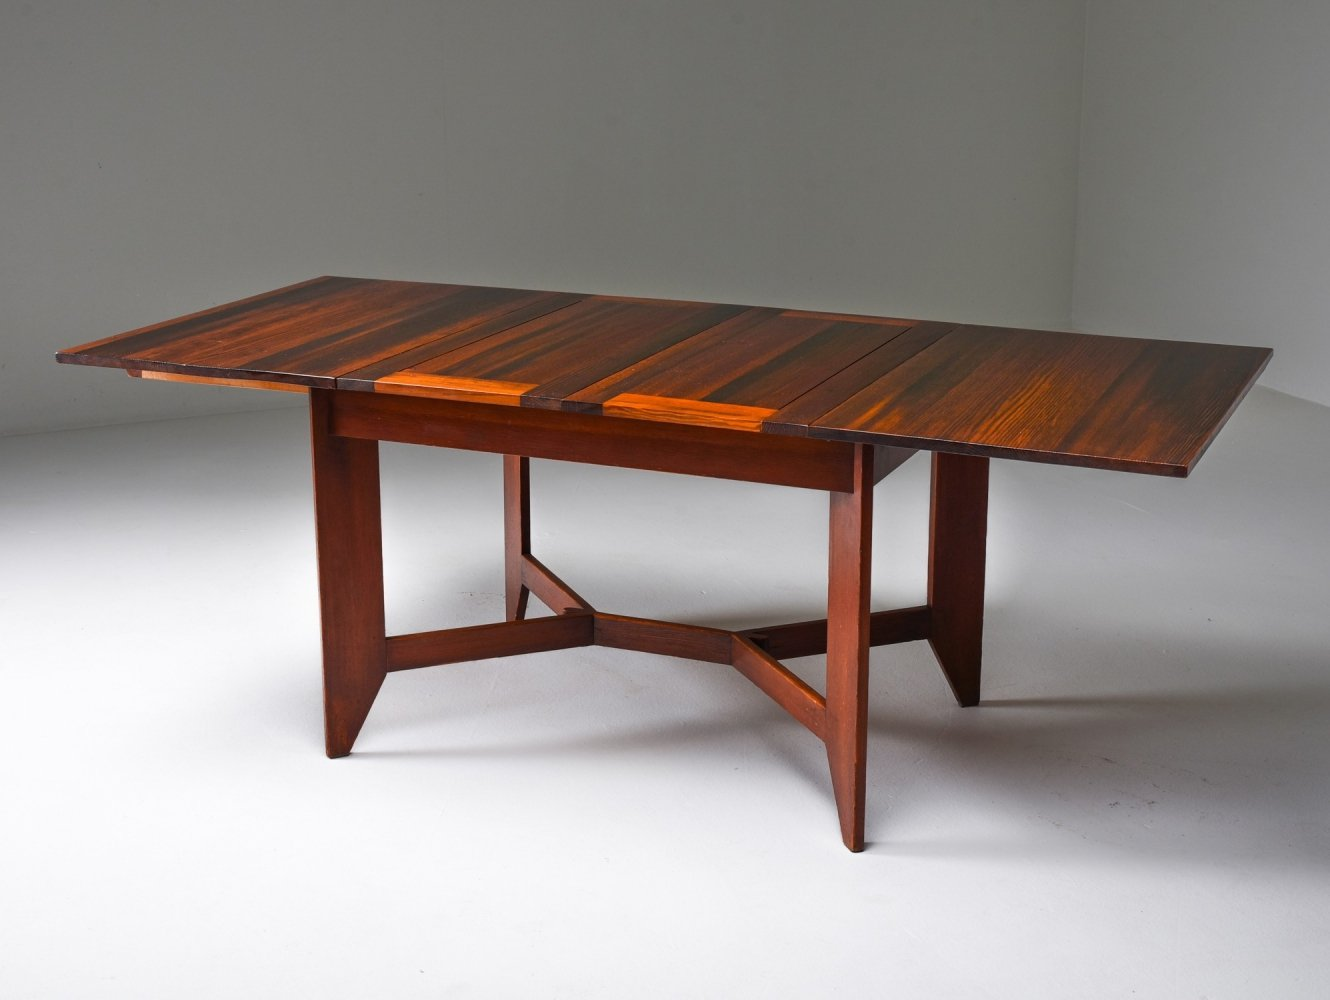 Modernist Dining Table by H. Wouda, 1930